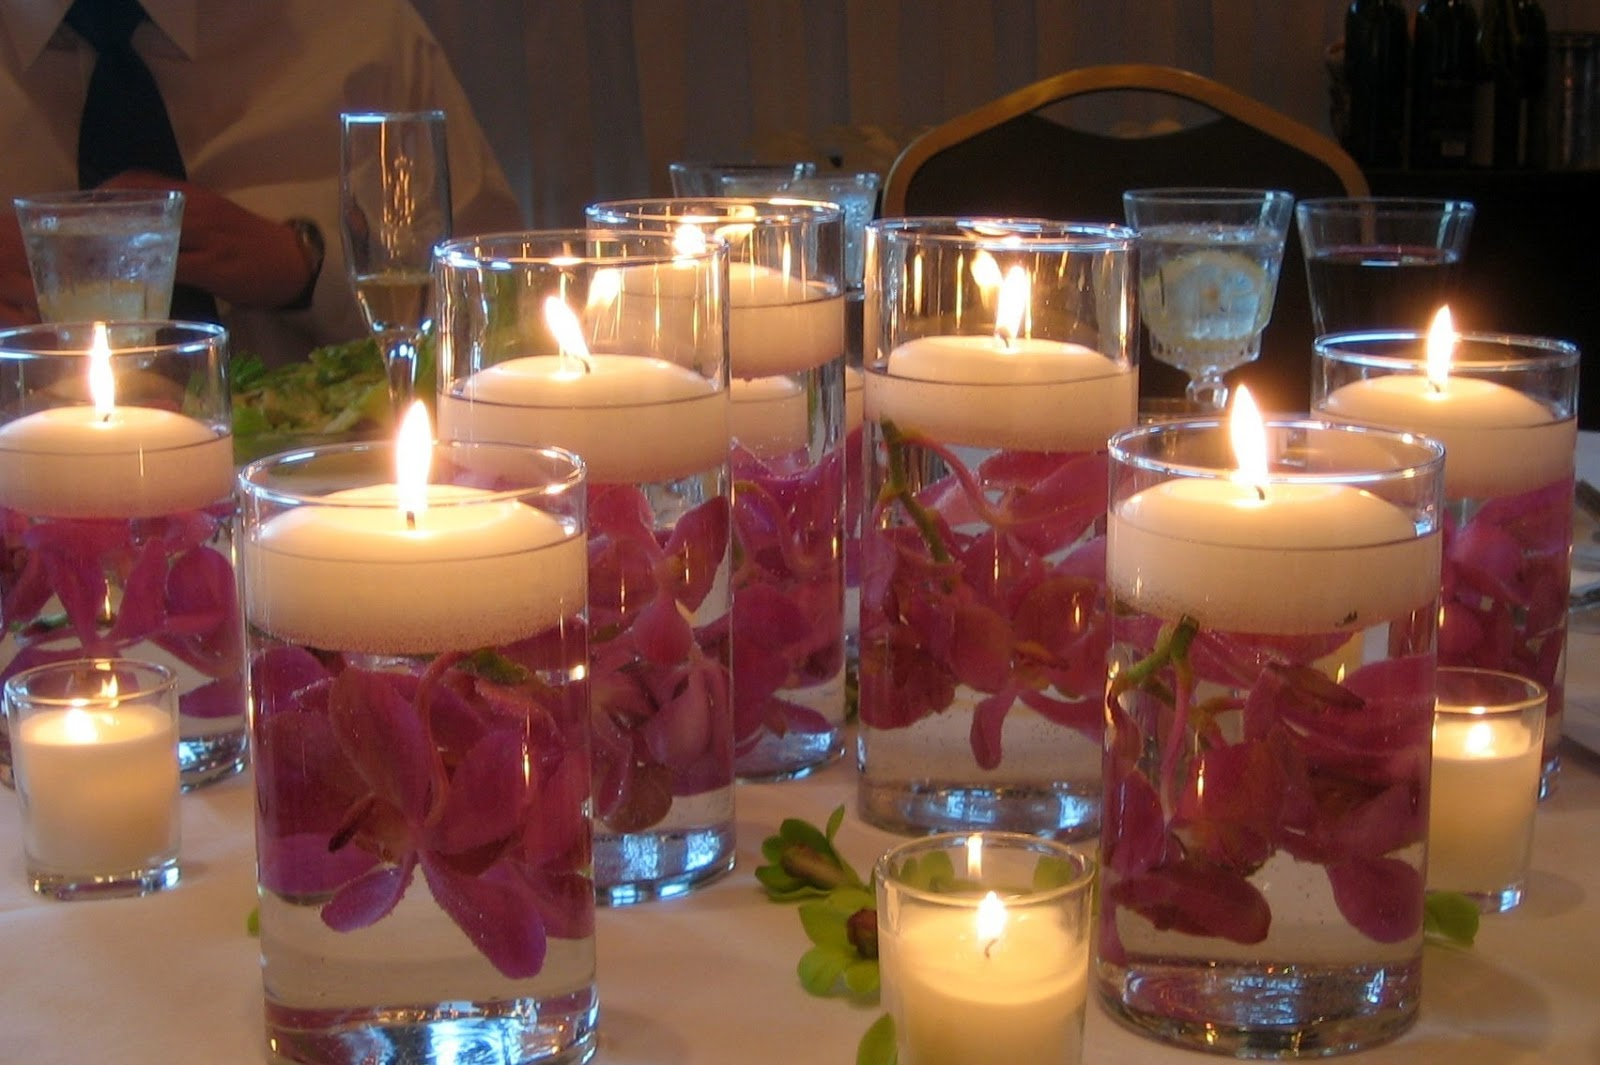 MOST BEAUTIFUL CANDLES | art and creative design | Pinterest ...